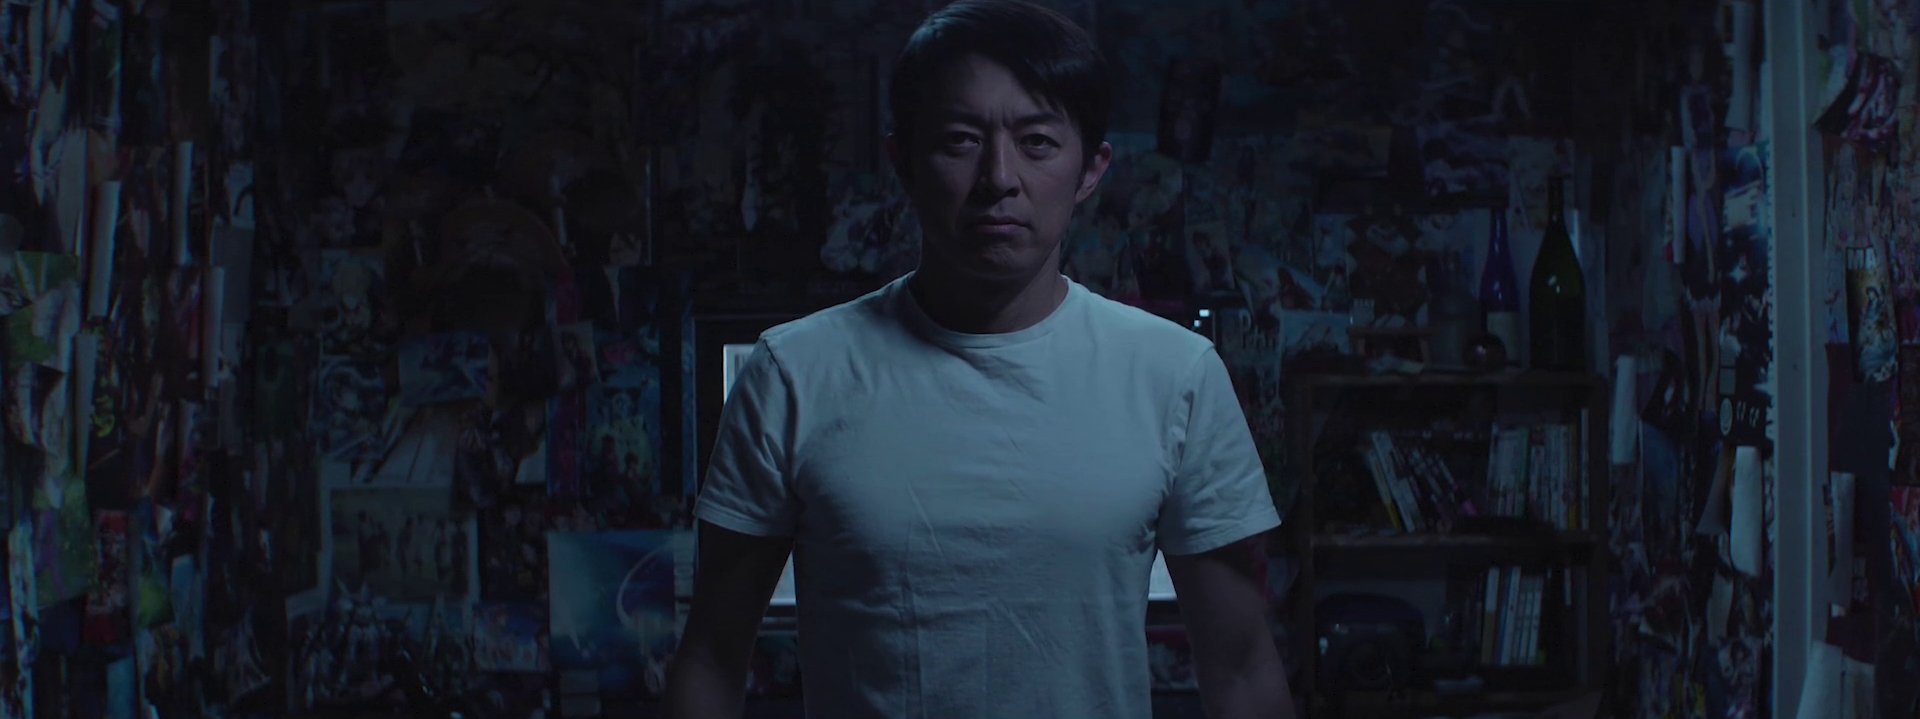 portrait of a Japanese actor in a room where walls are covered with posters